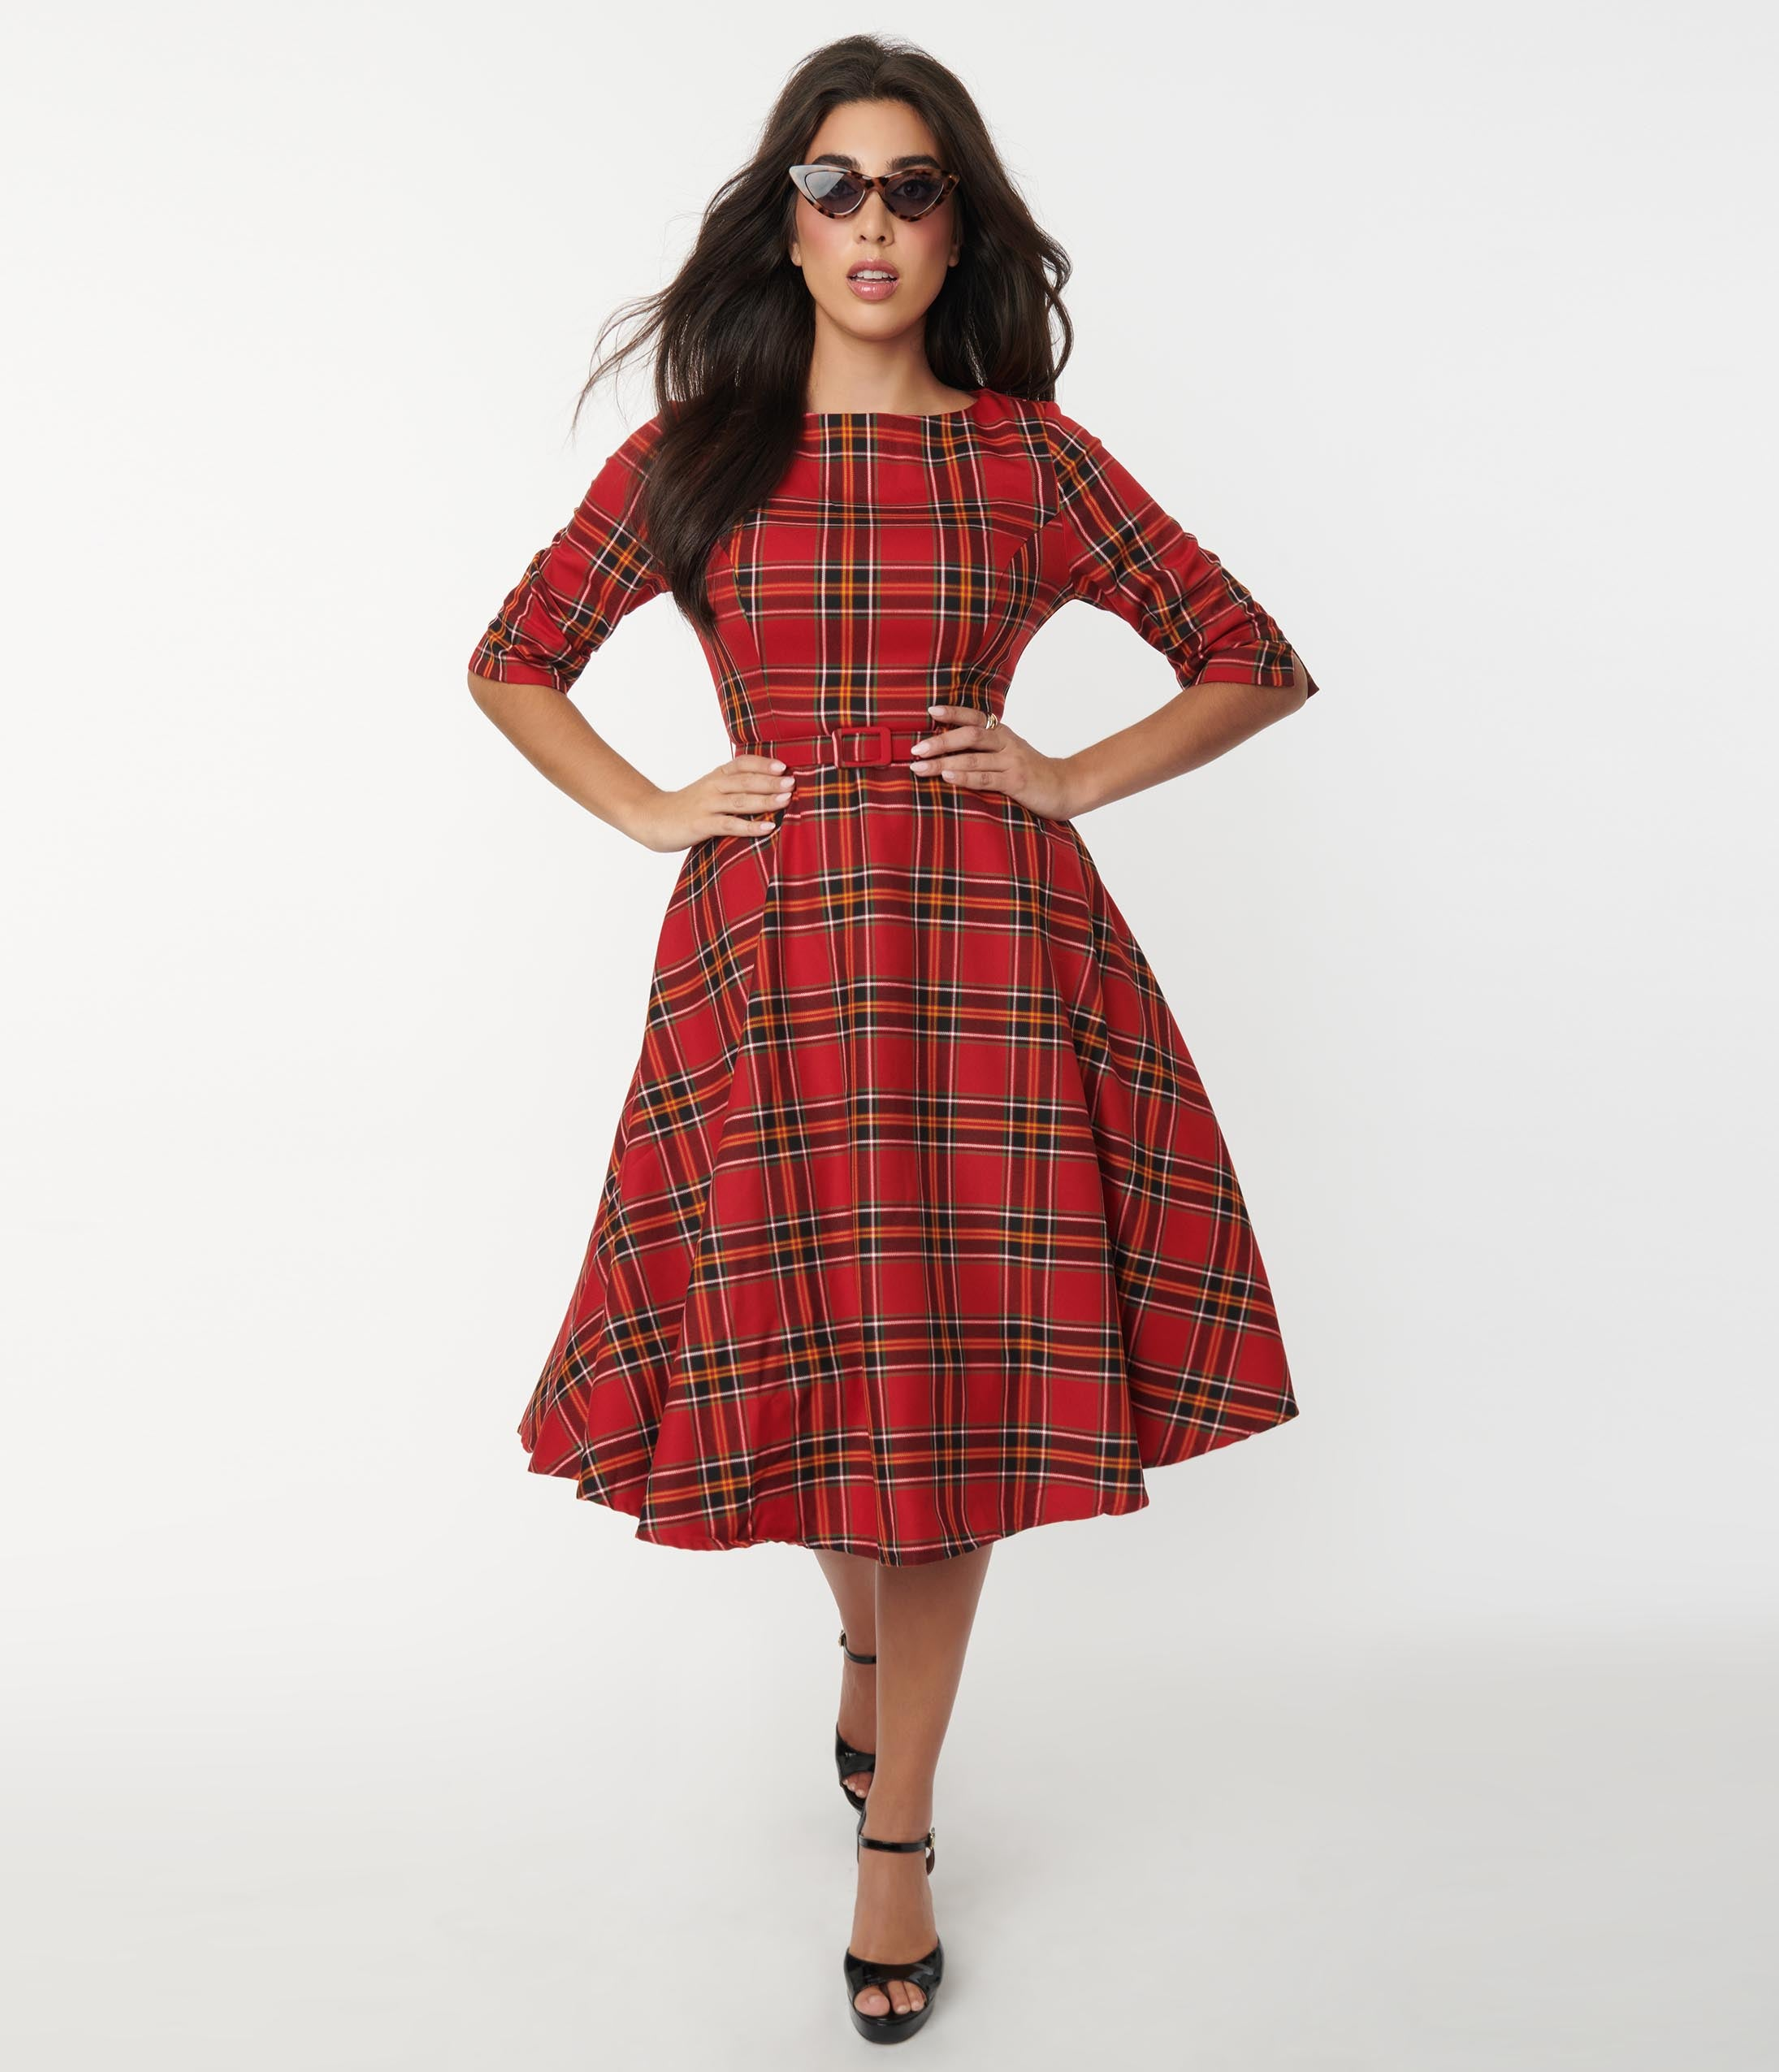 Pin Up Girl Costumes | Pin Up Costumes Collectif Red Plaid Suzanne Swing Dress $92.00 AT vintagedancer.com